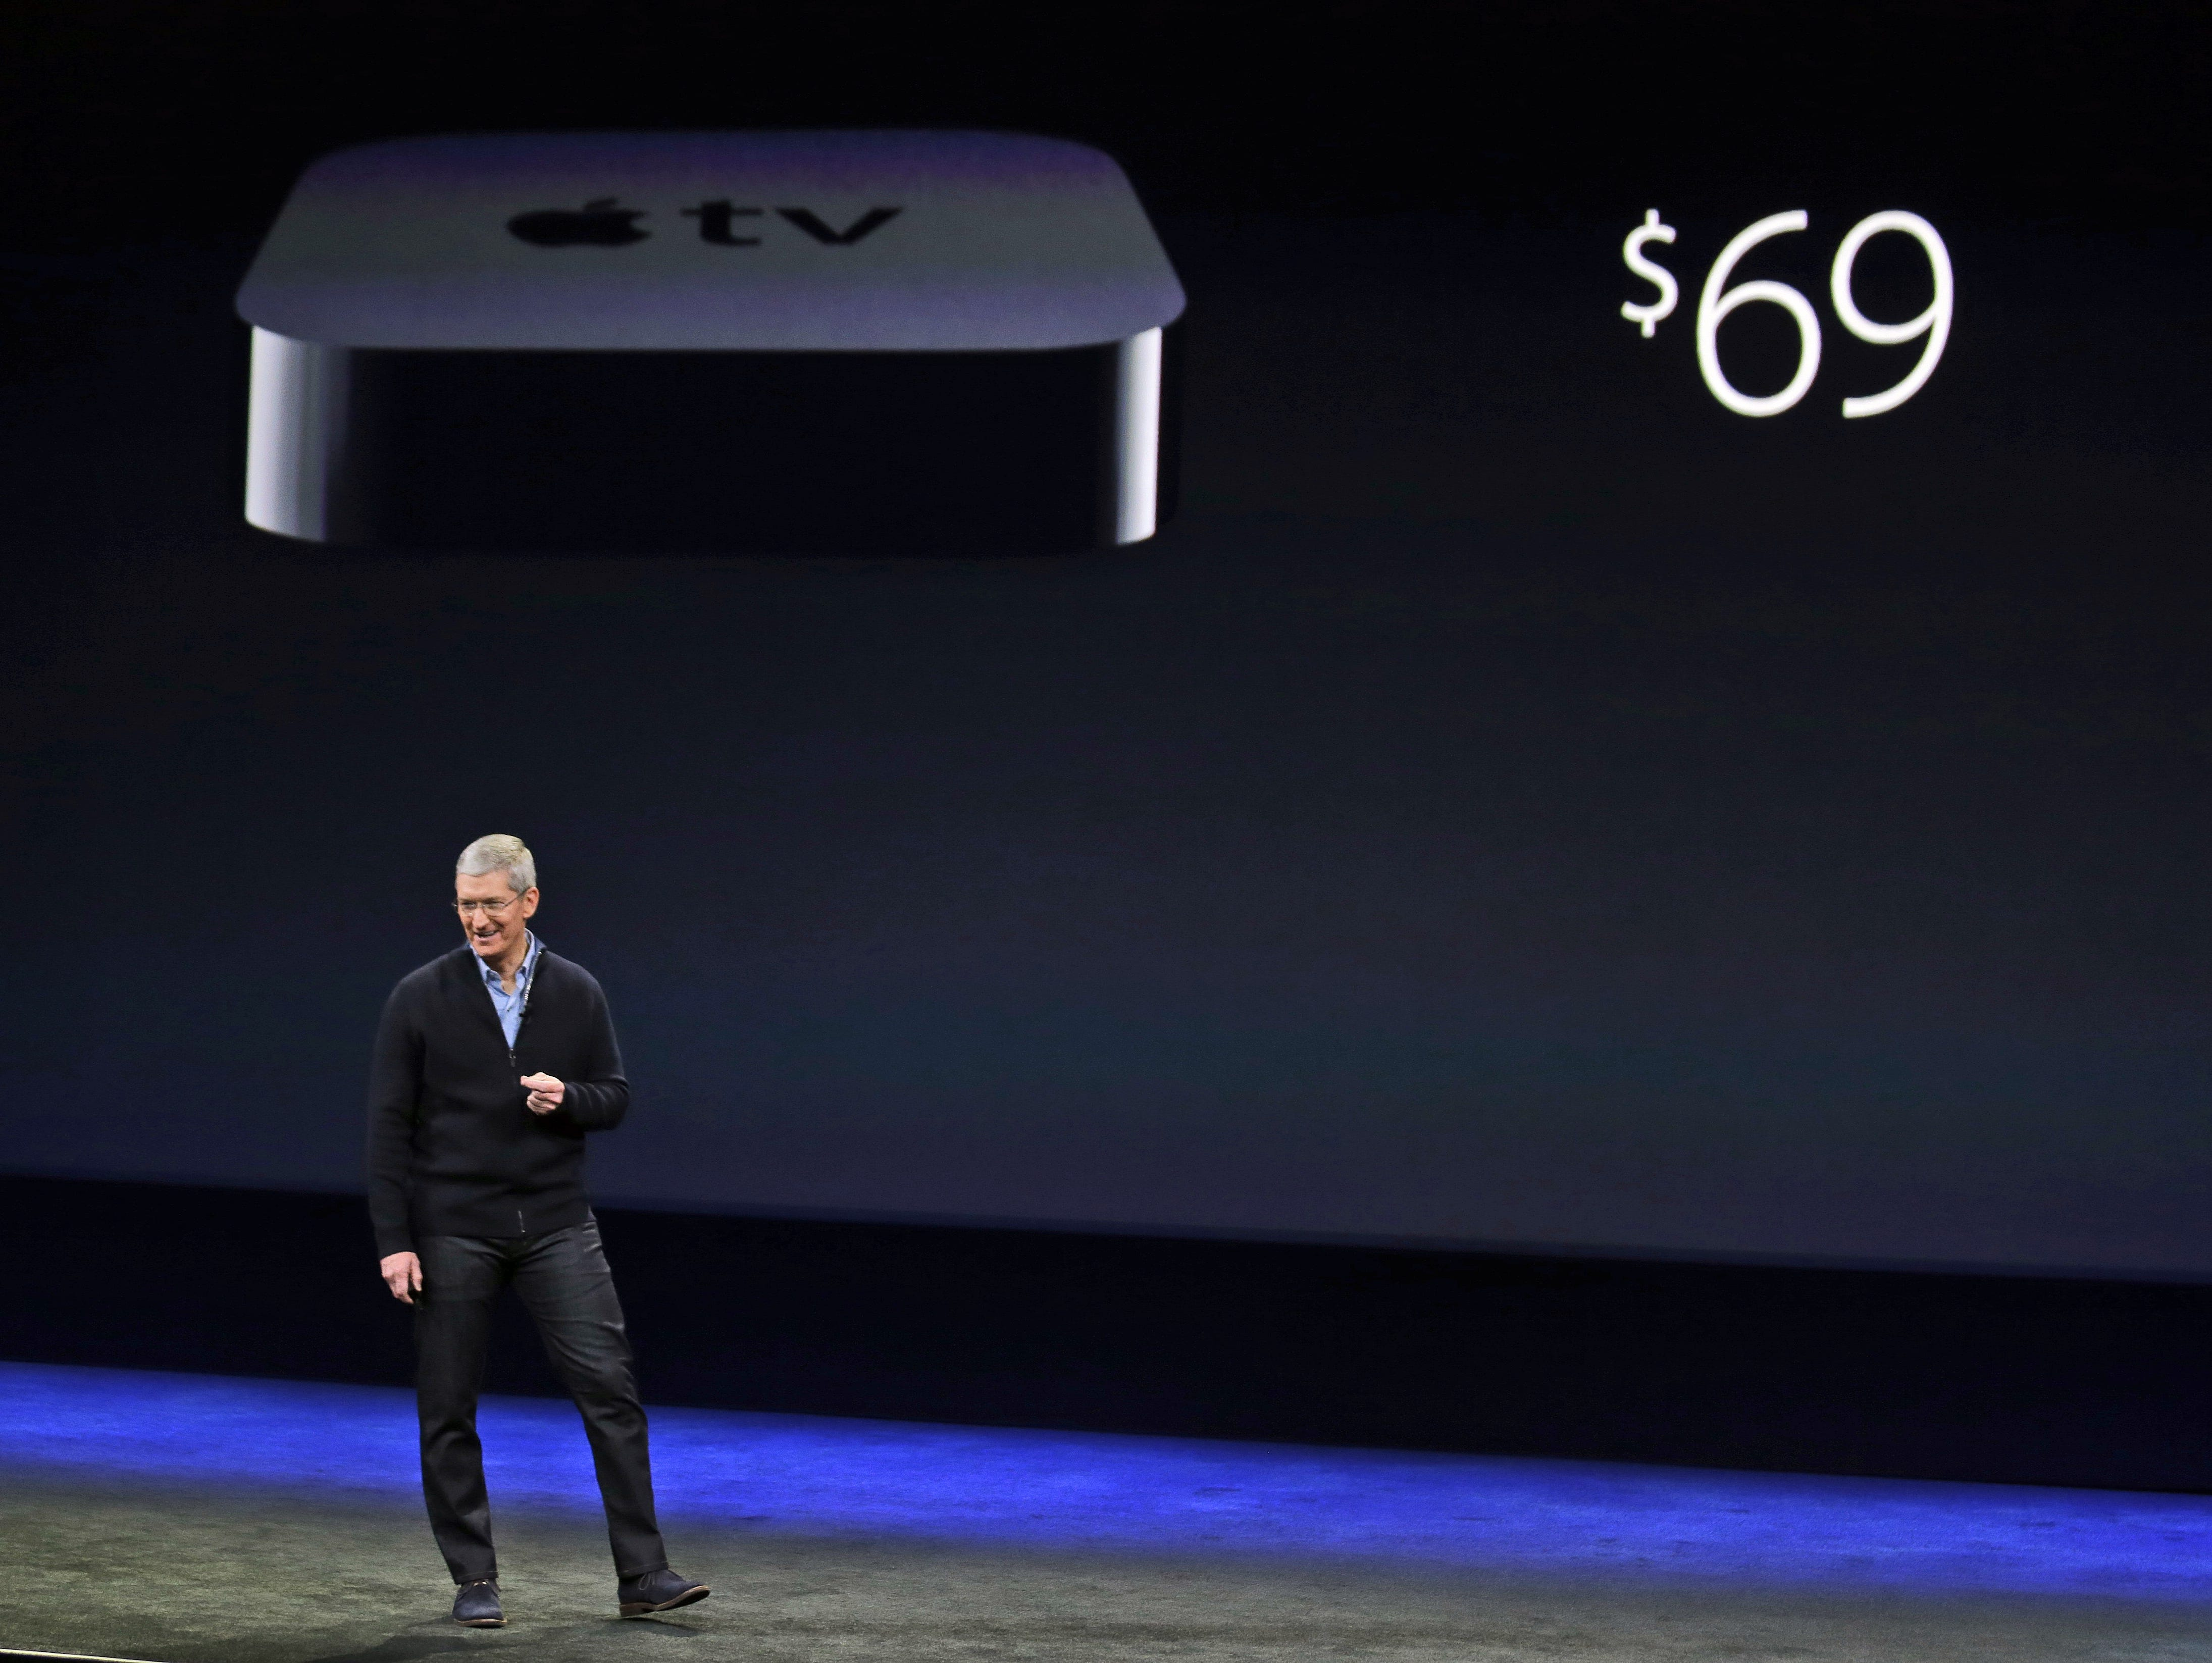 Apple CEO Tim Cook talks about Apple TV's new lower price during an Apple event on Monday, March 9, 2015, in San Francisco. WSJ says Apple now has no plans for a TV. (AP Photo/Eric Risberg) ORG XMIT: FX107